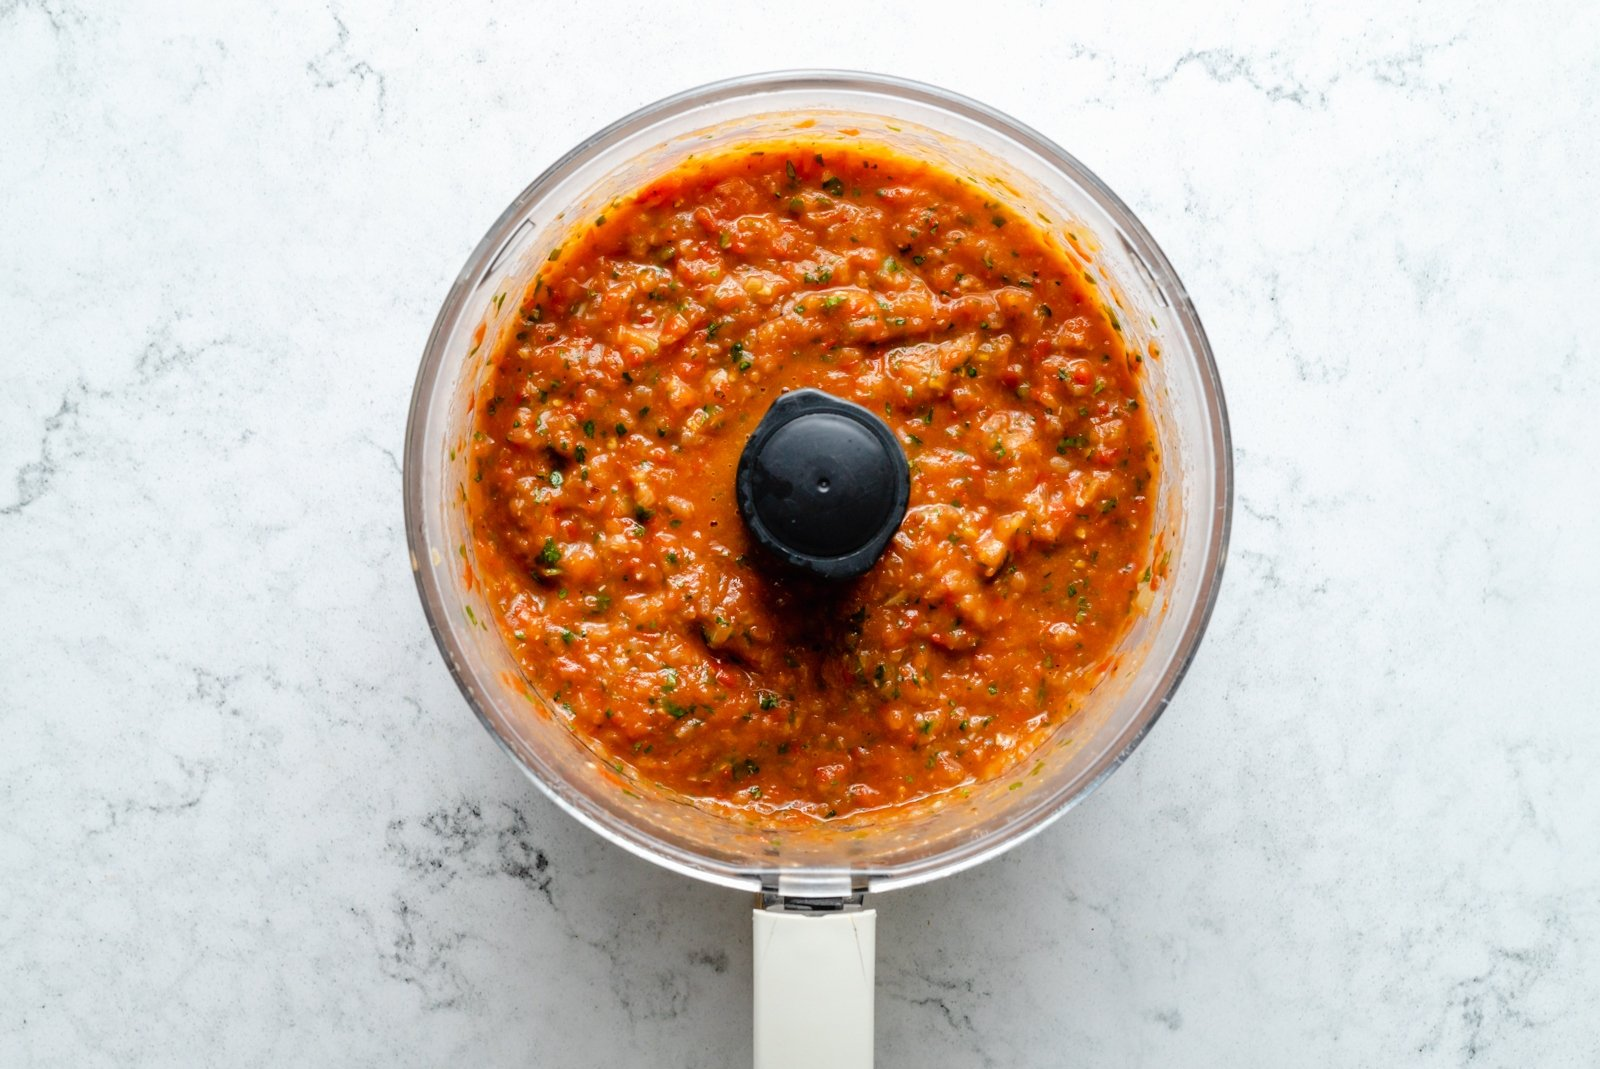 homemade tomato sauce in a food processor